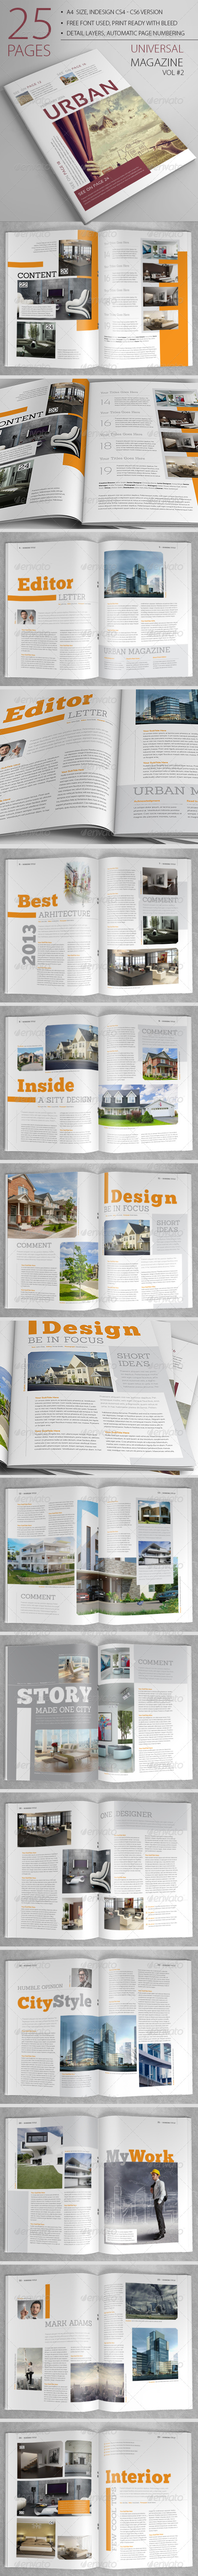 25 Pages Universal Magazine Vol2 - Magazines Print Templates